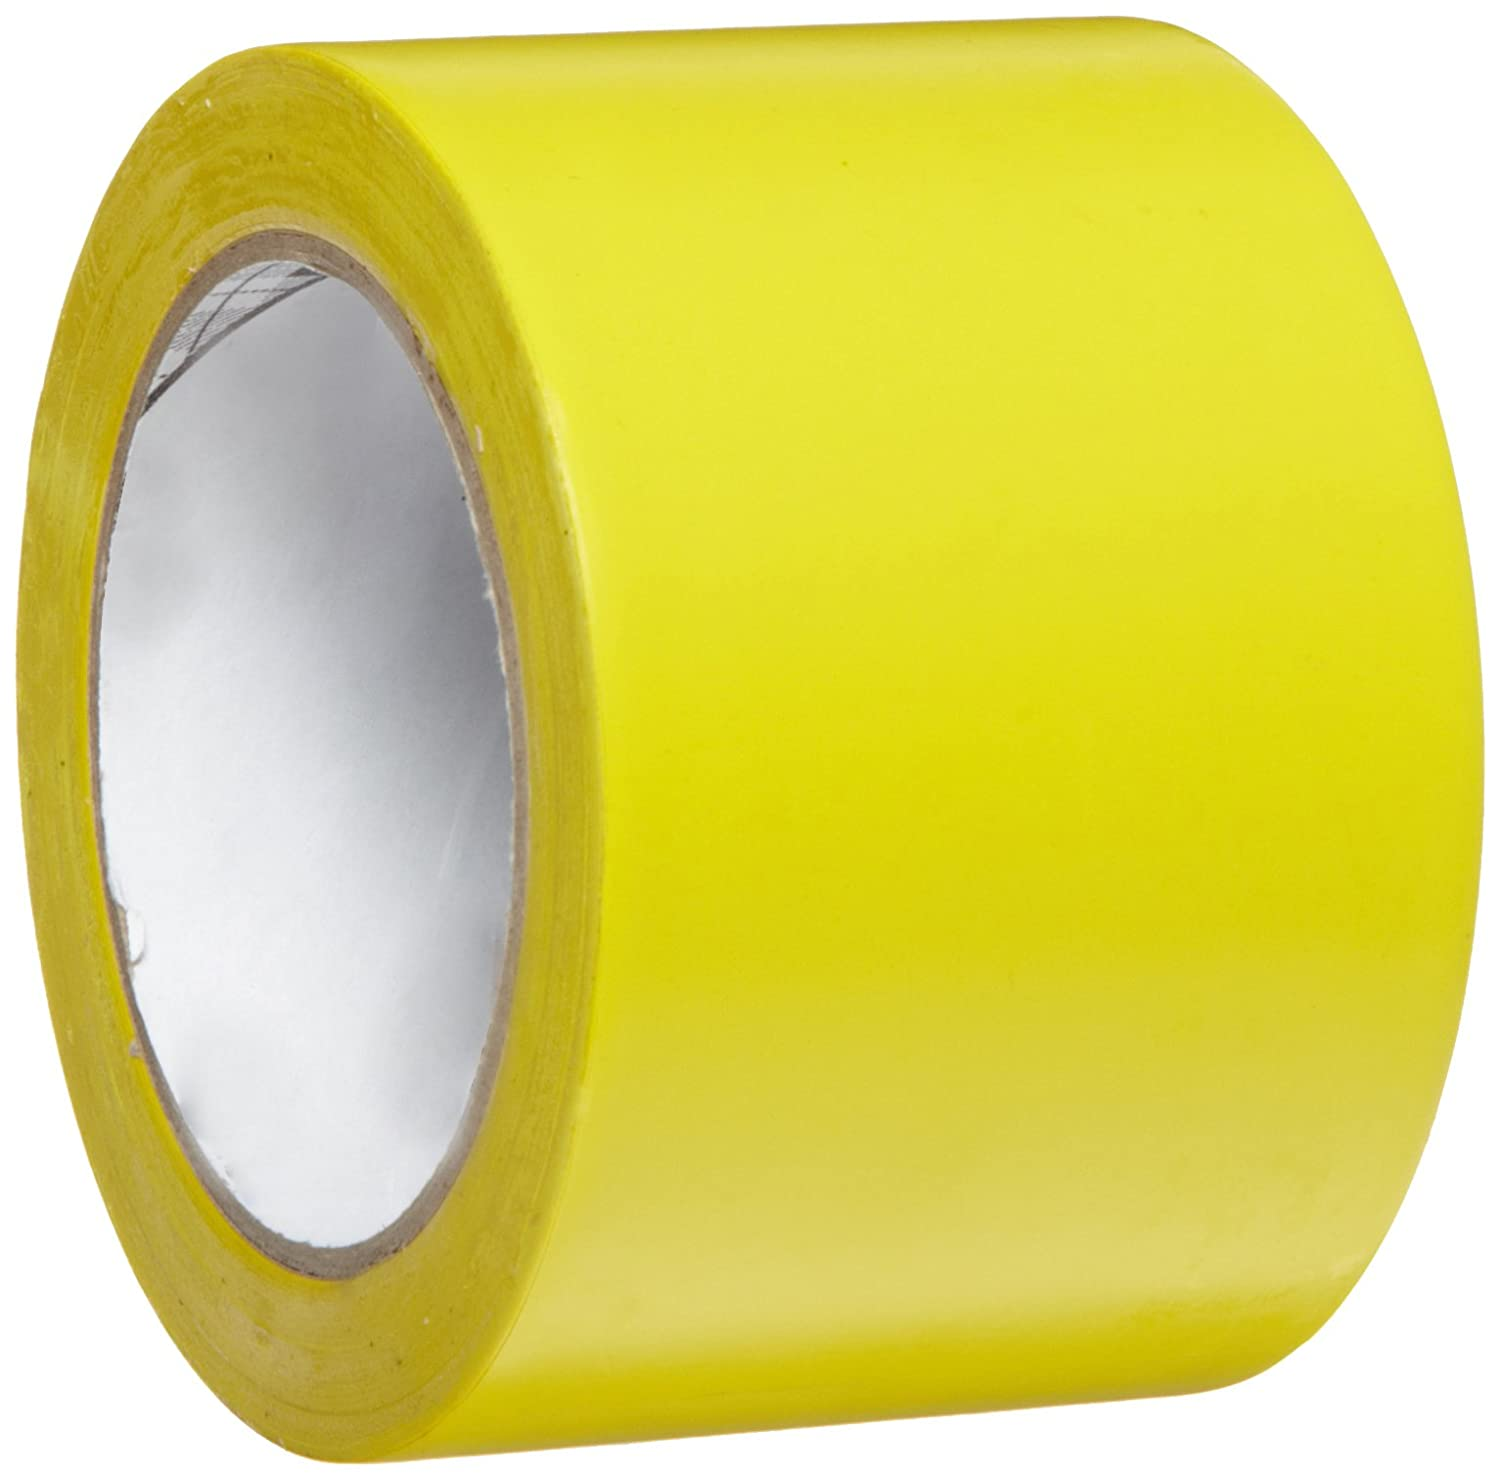 3M General Purpose Vinyl Tape 764, Yellow, 3 in x 36 yd, 5 mil